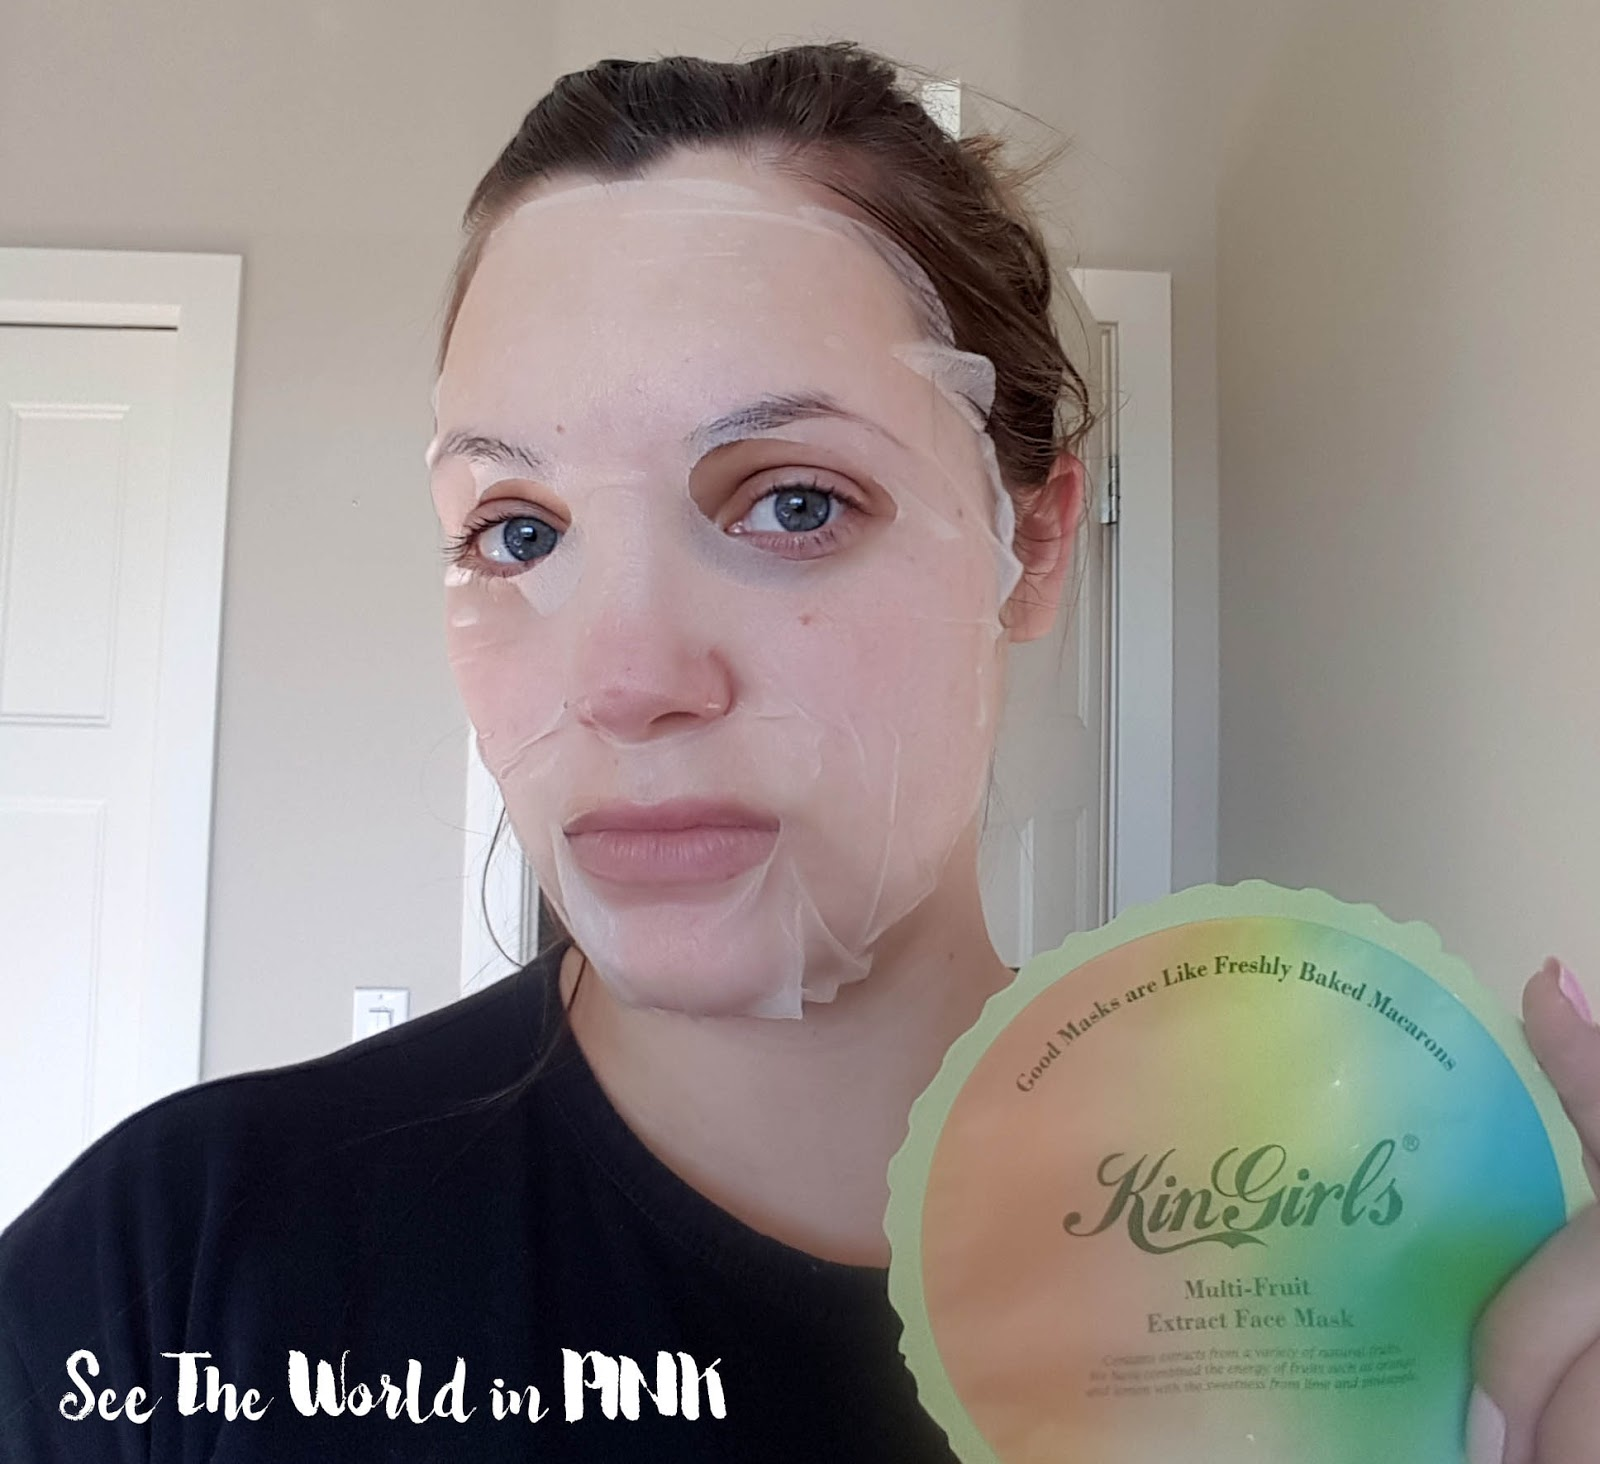 Mask Wednesday - KinGirls Mask Reviews + $5 Off Coupon Code At Beautibi!